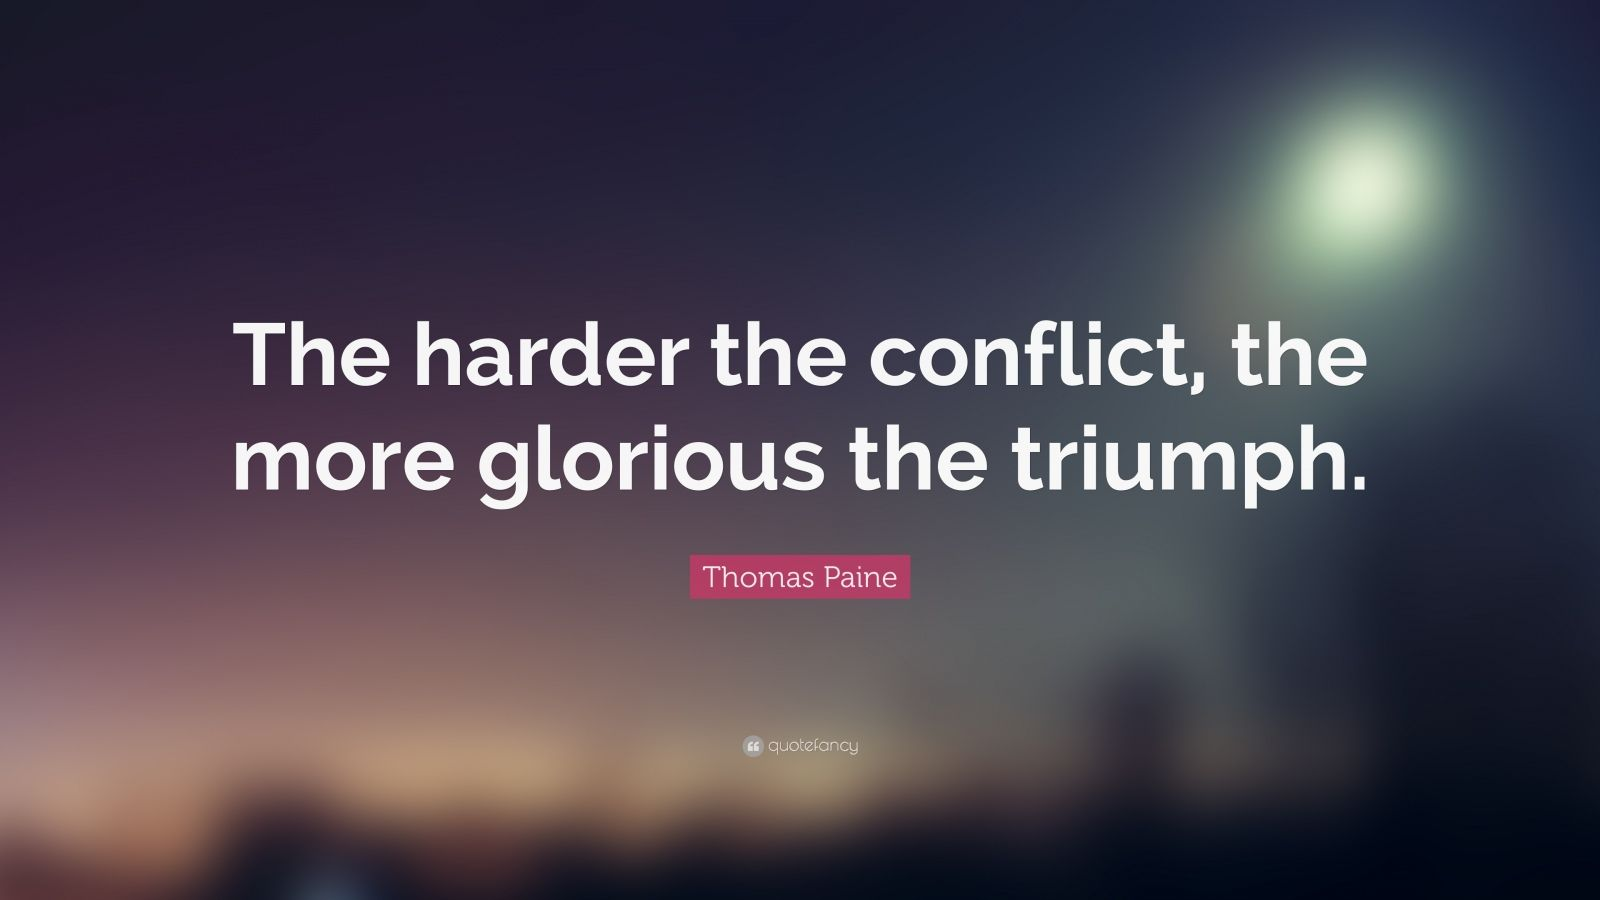 an analysis of the quote the harder the conflict the more glorious the triumph May you find comfort and joy in these encouraging the harder the conflict, the more glorious the triumph by thomas paine.